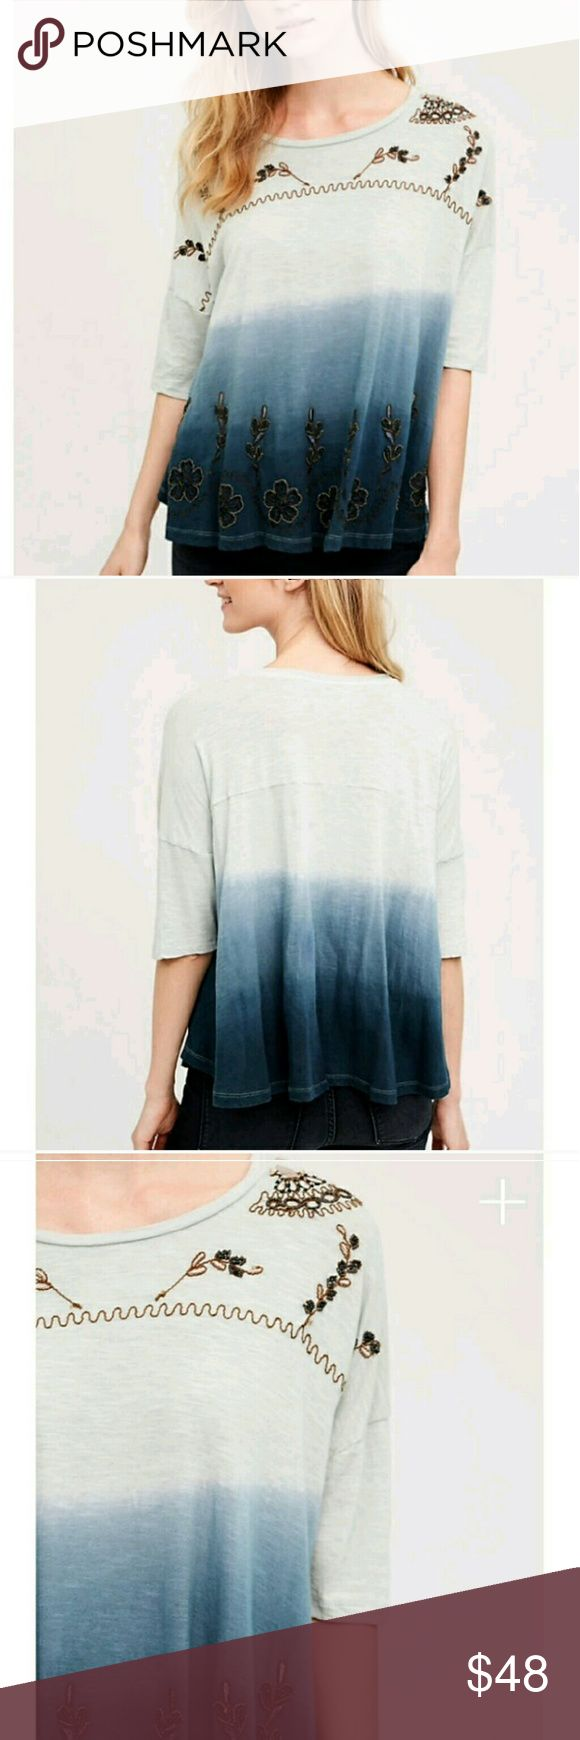 Tulsa swing tee Beautiful beads details, ombre effect, flawless,  loose fit, tag is small , but runs large more like a medum, or 6/8. Anthropologie Tops Tees - Short Sleeve